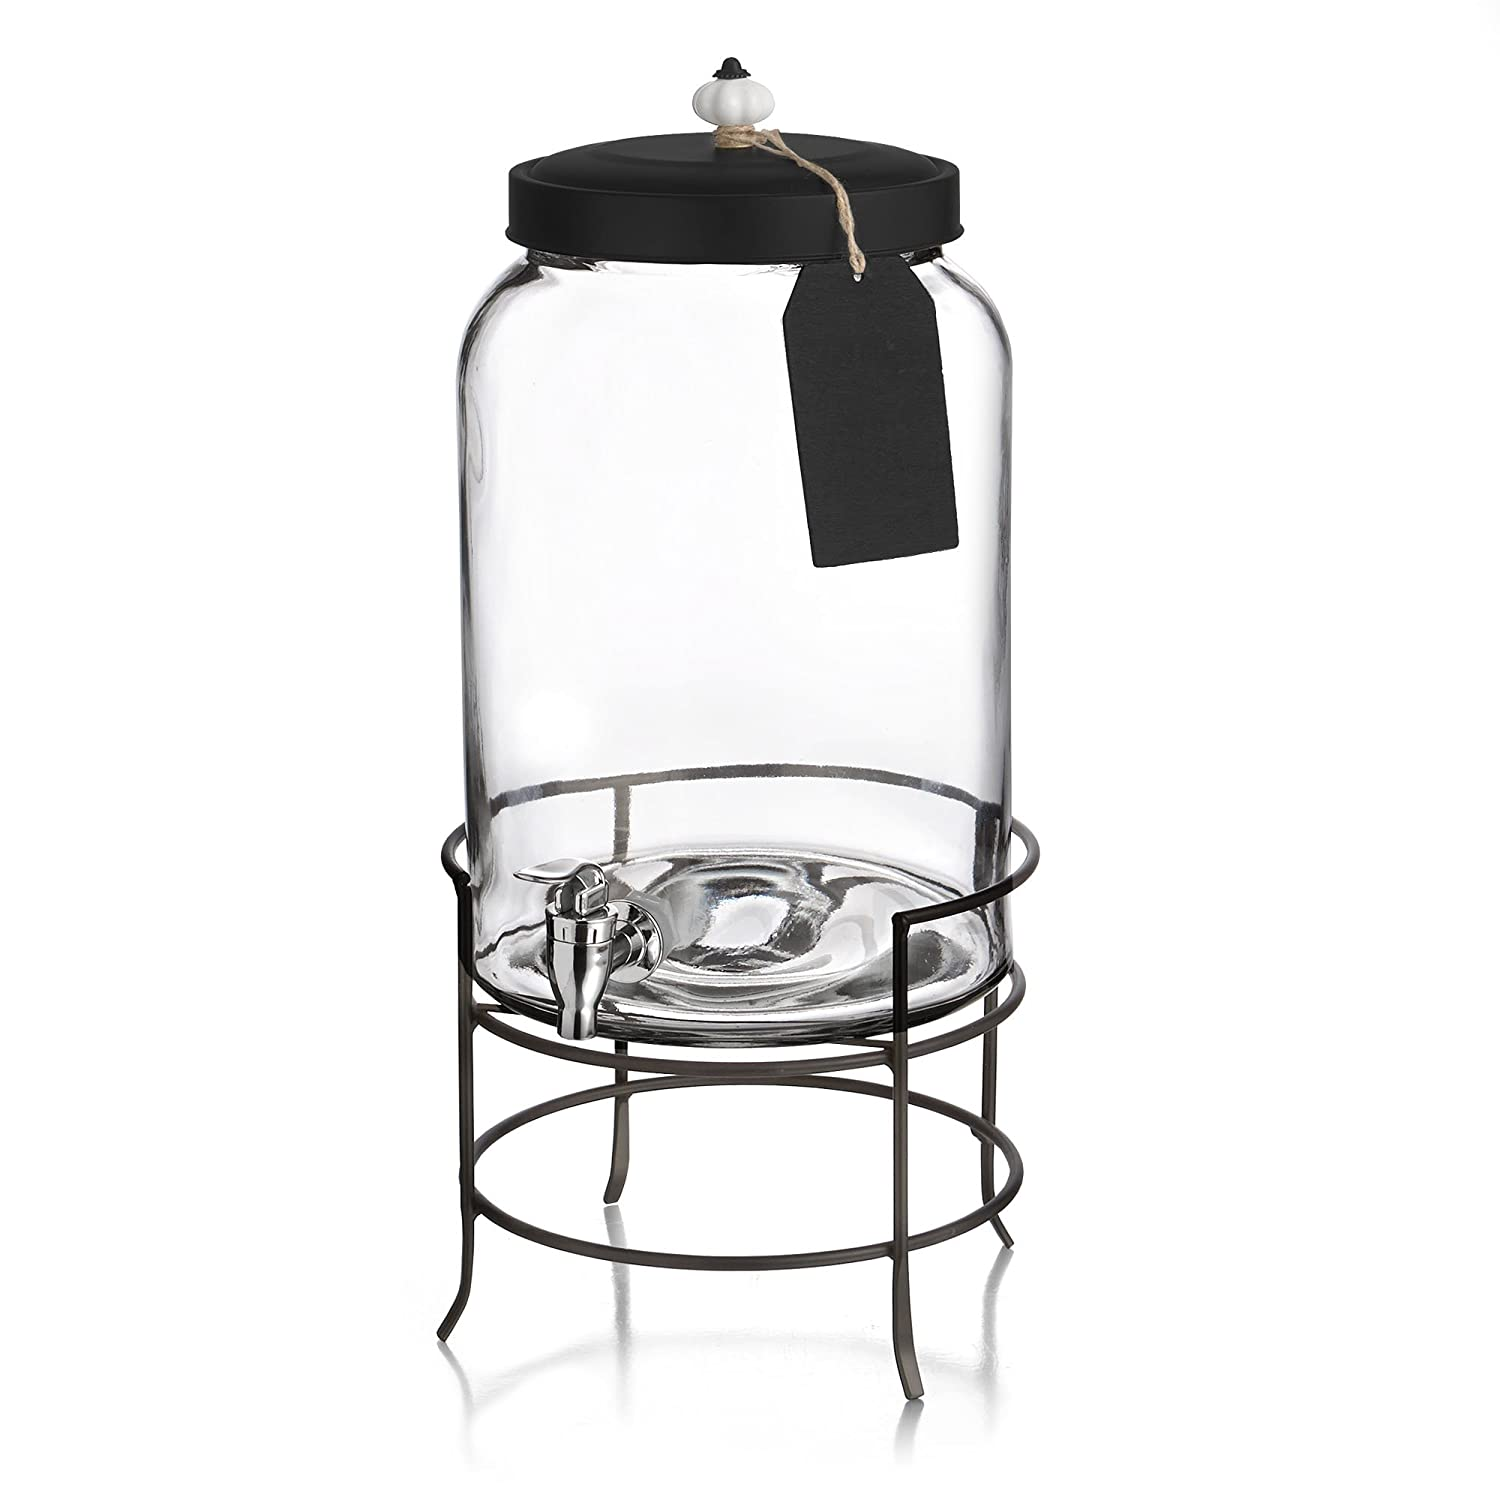 "Style Setter Franklin 210235-GB 3 Gallon Glass Beverage Drink Dispensers with Metal Stand & Lid, Tag and Ceramic Knob 10x17"" Clear"